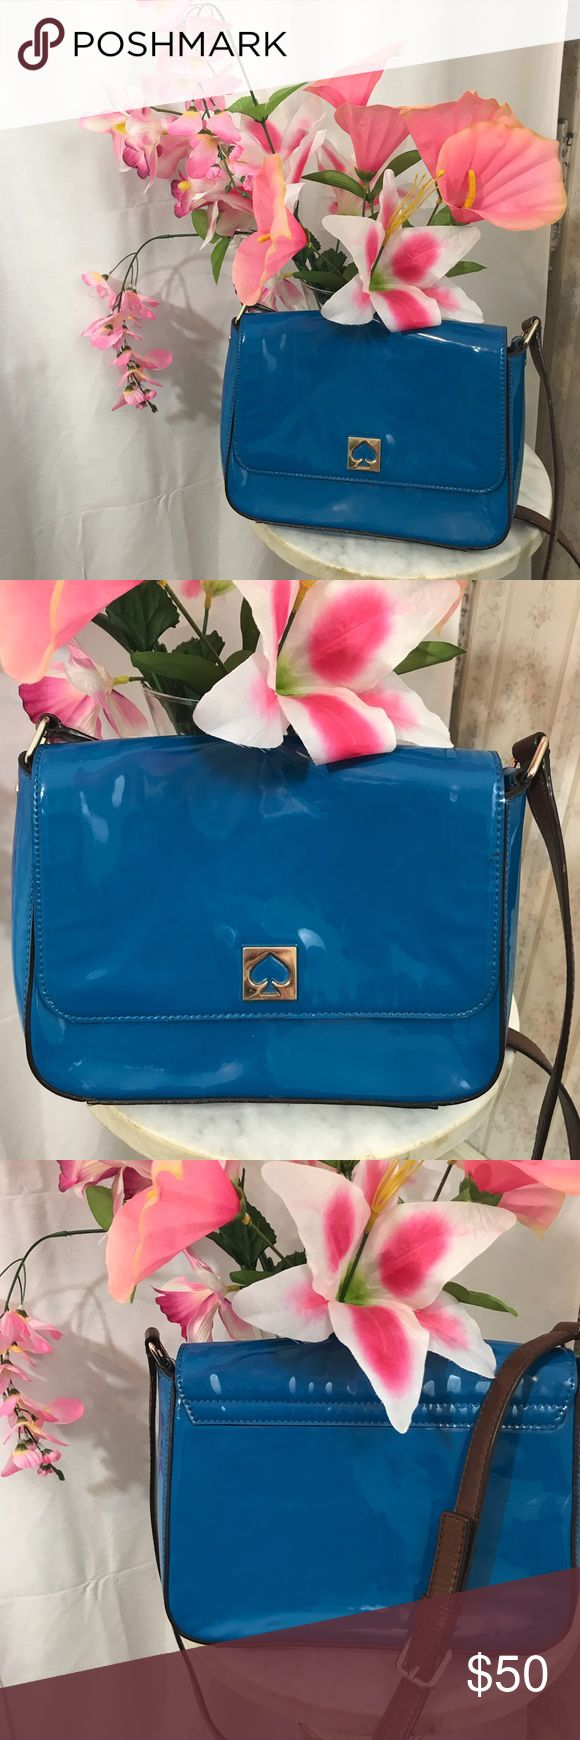 "Vintage Kate Spade Blue Purse Approximately 7.5 X 10"" kate spade Bags Crossbody Bags"